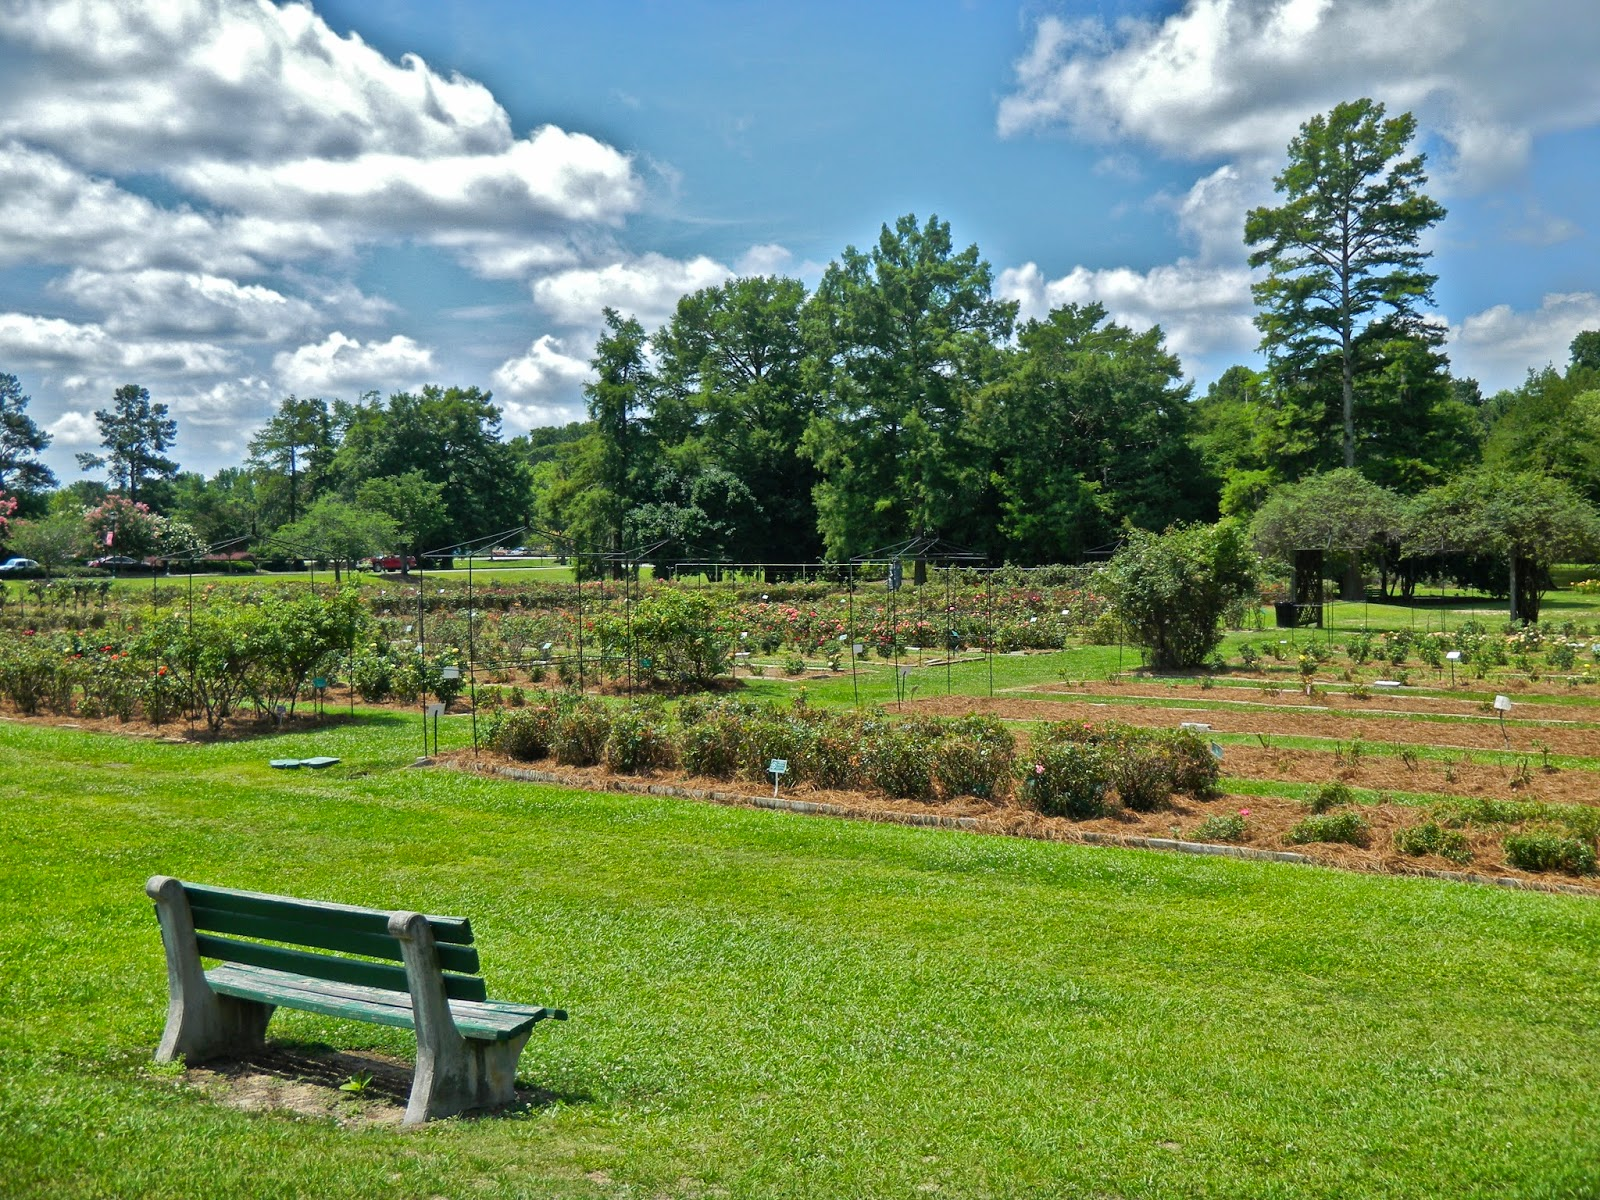 Rose beds at Edisto Memorial Gardens in Orangeburg, South Carolina